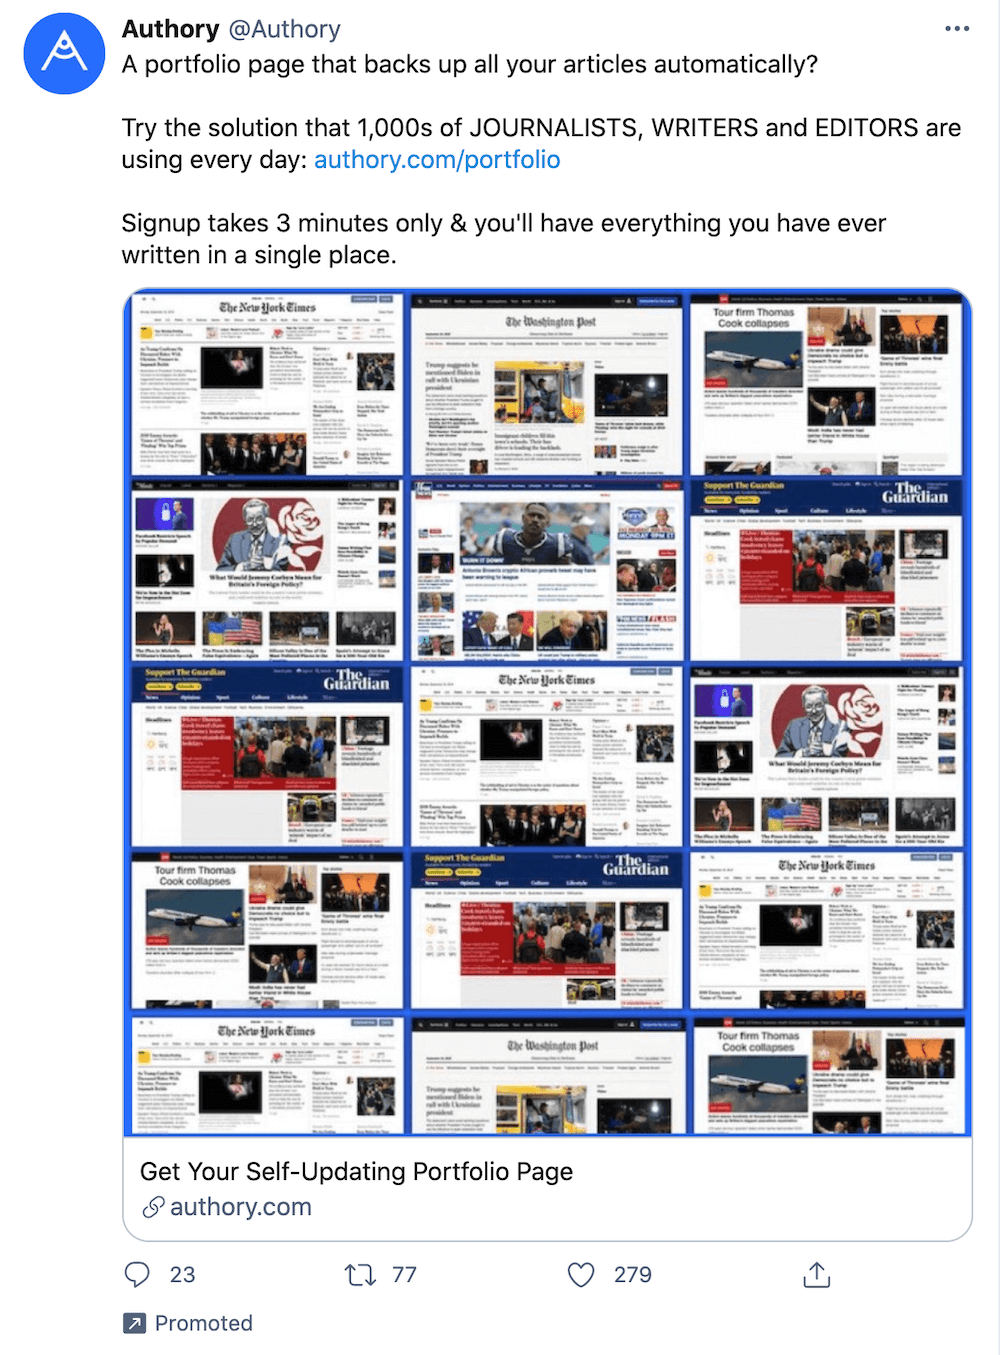 """""""A portfolio page that backs up all your articles automatically? Try the solution that 1,000's of JOURNALISTS, WRITERS, and EDITORS are using every day..."""""""